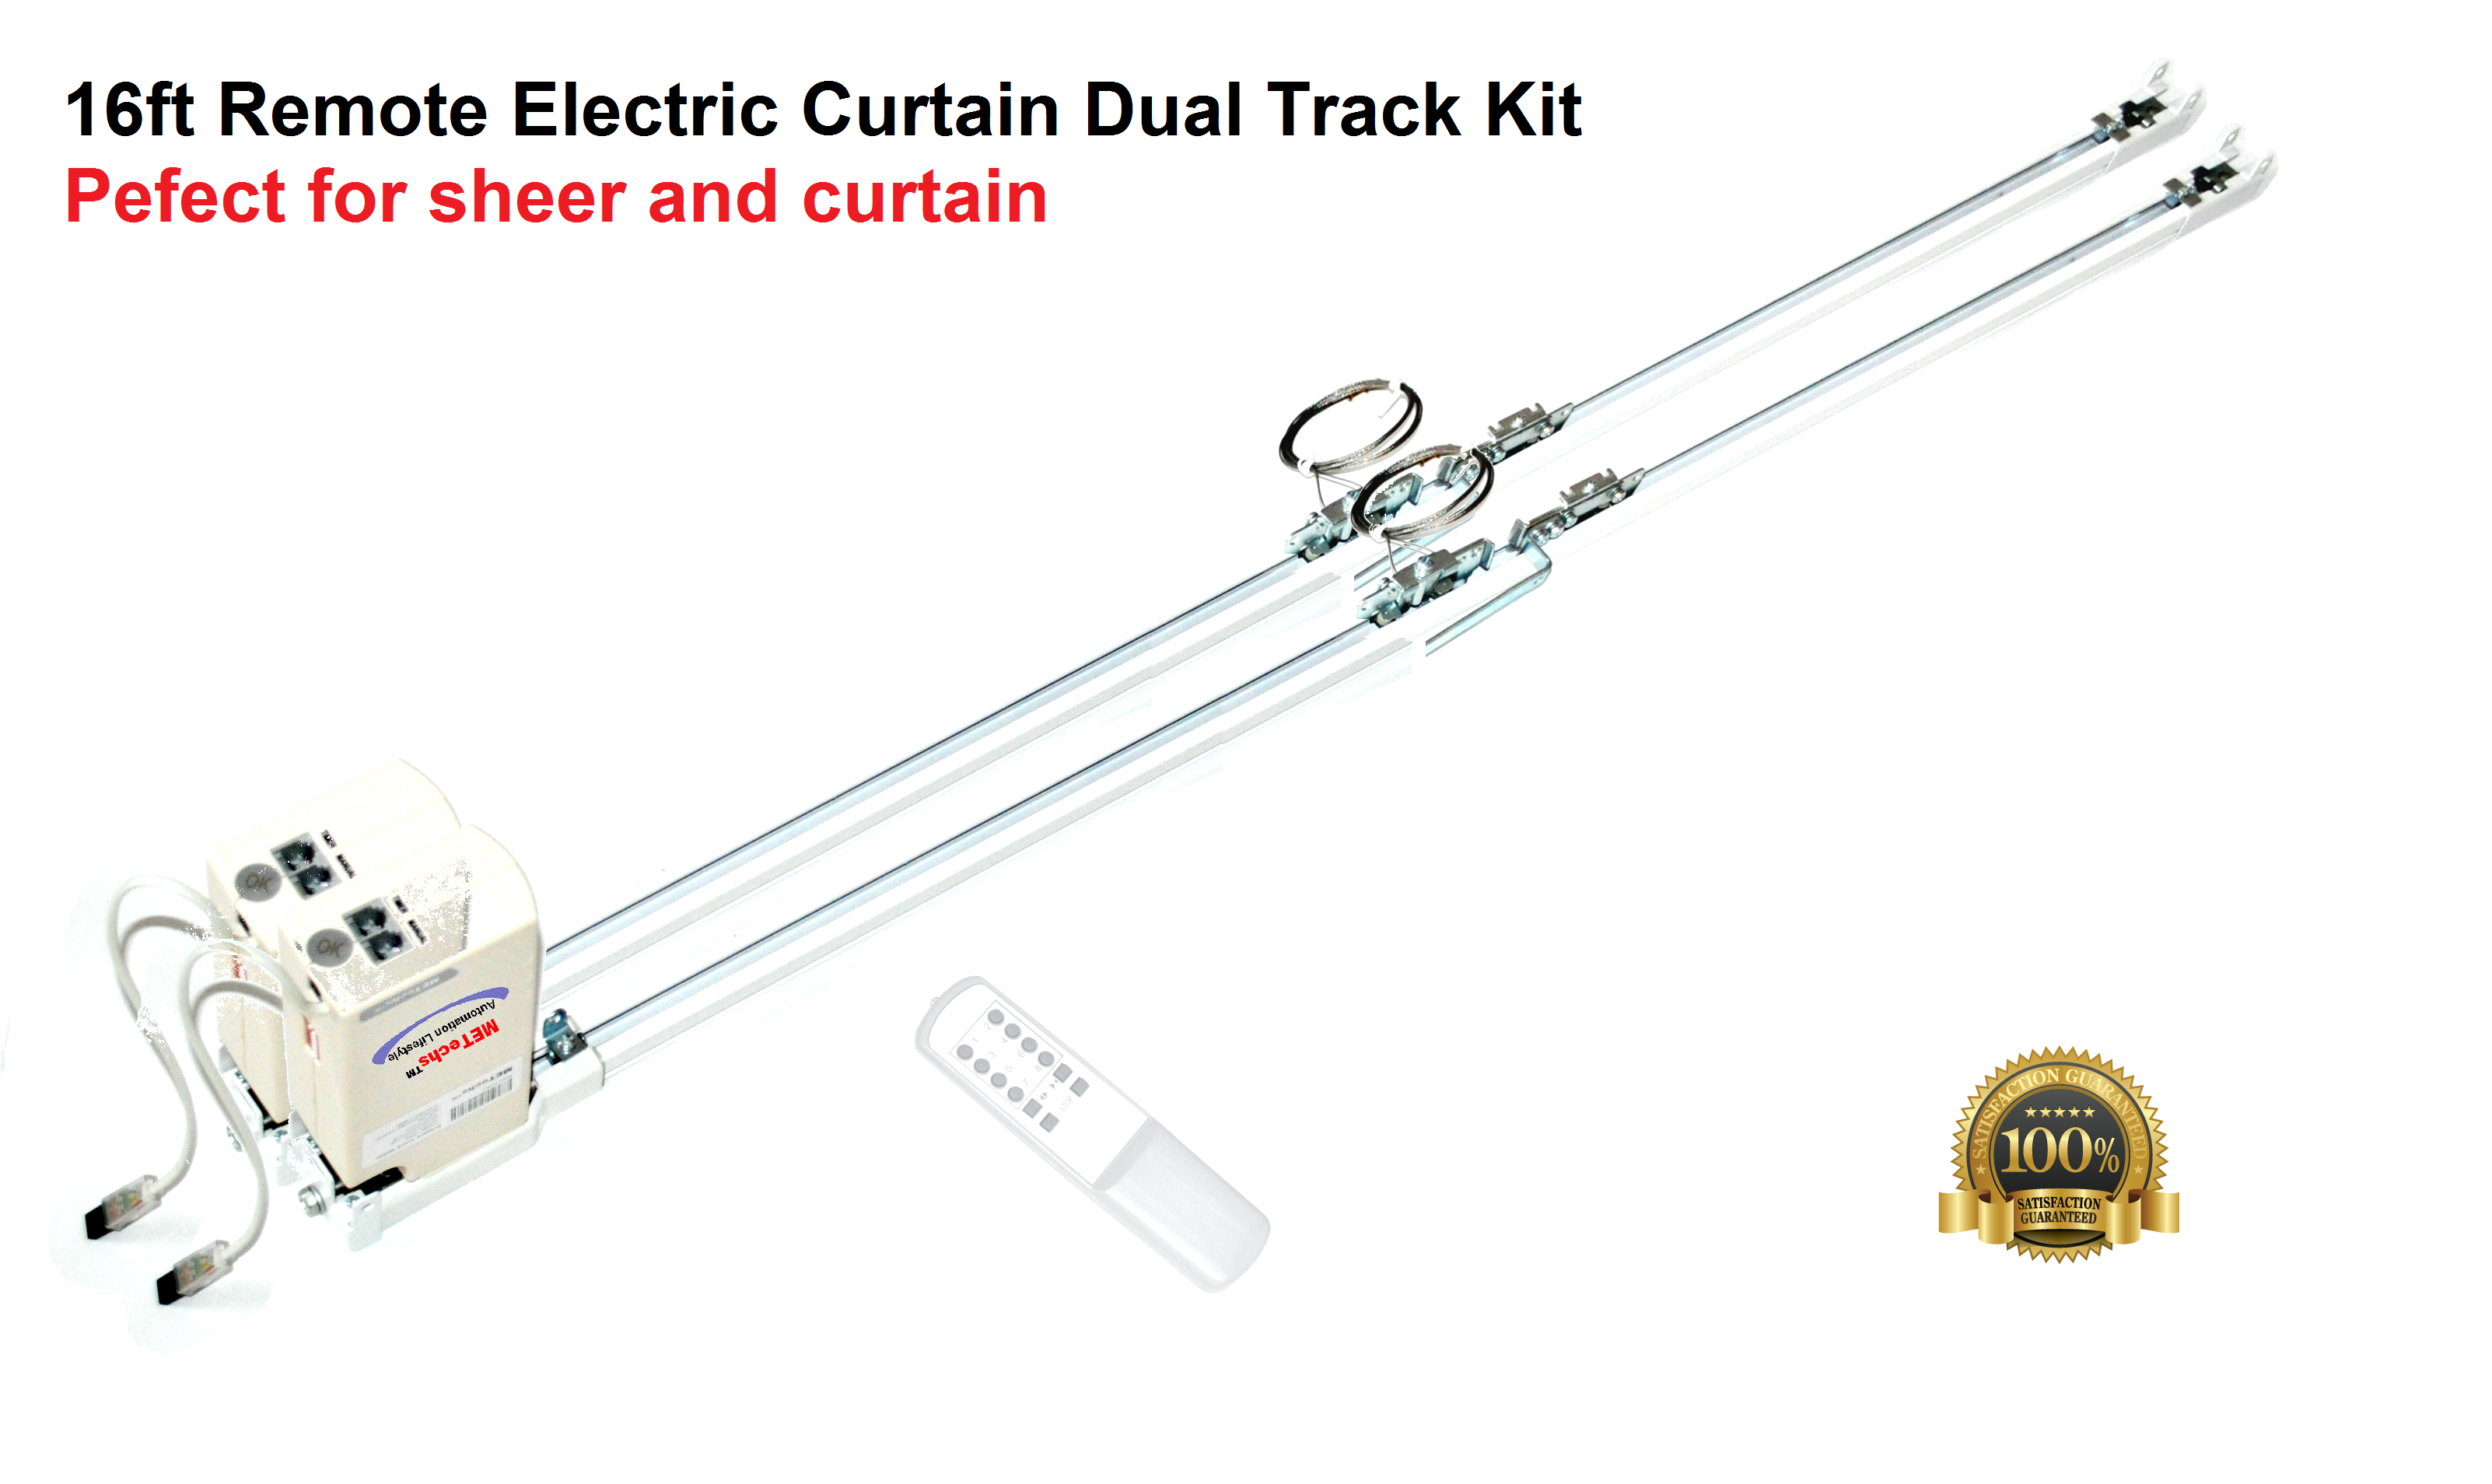 16' Remote Electric Curtain Dual Track CL200T5M-Dual